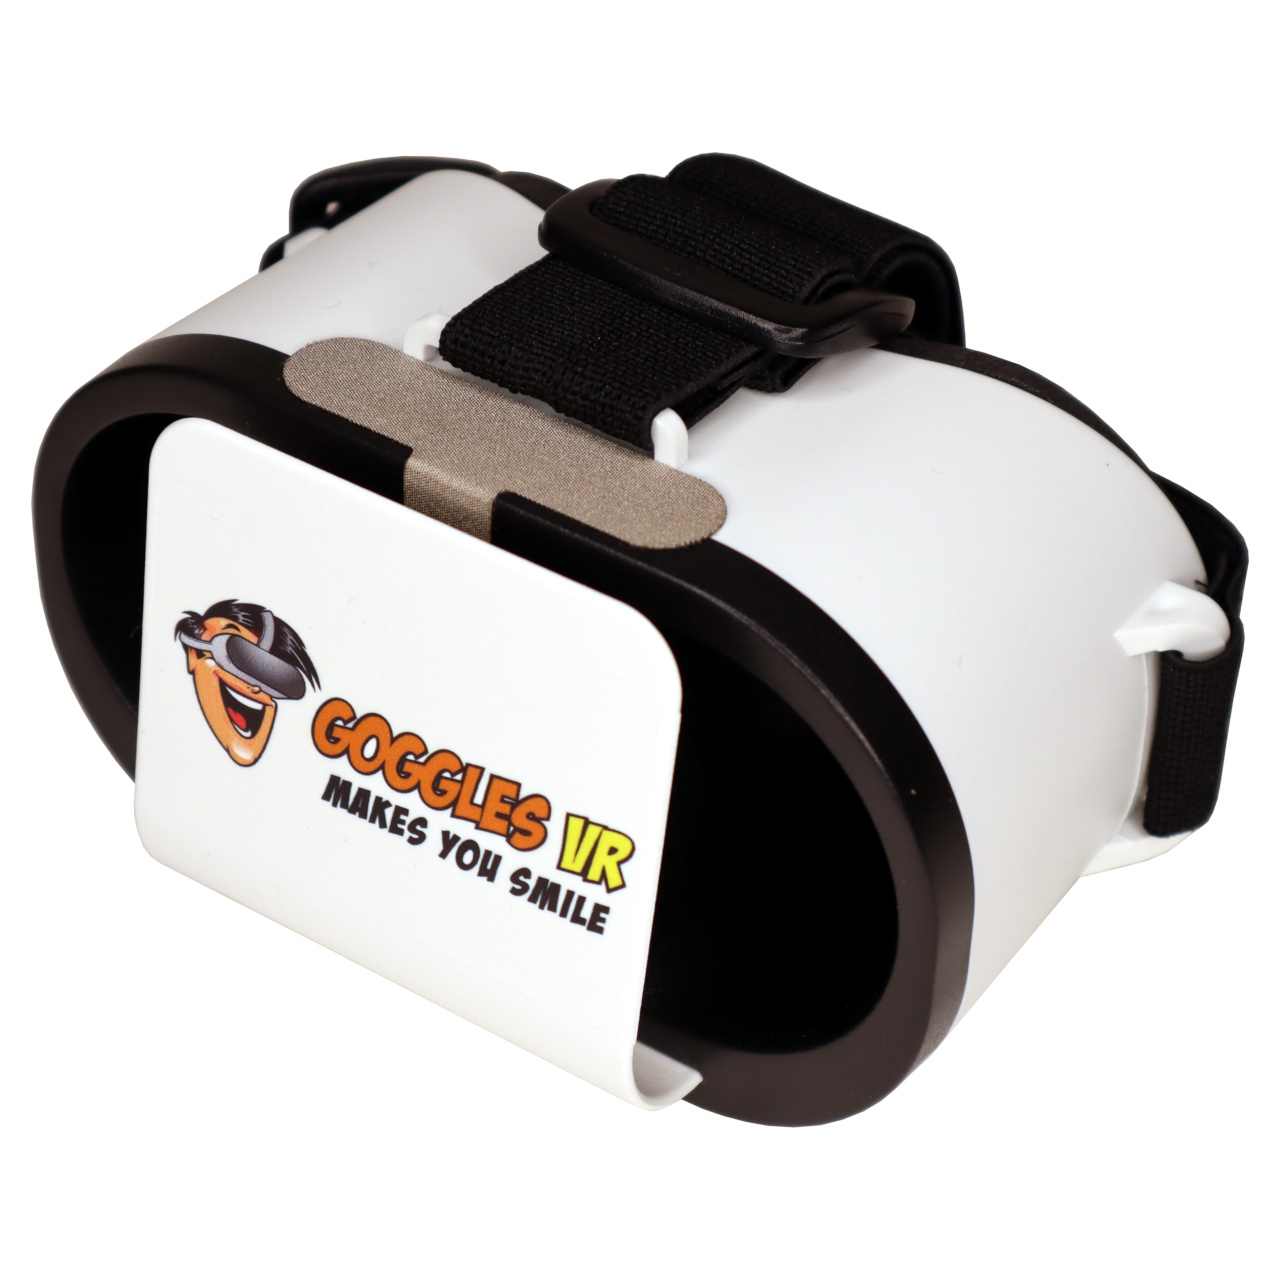 Goggles VR glasses for phones